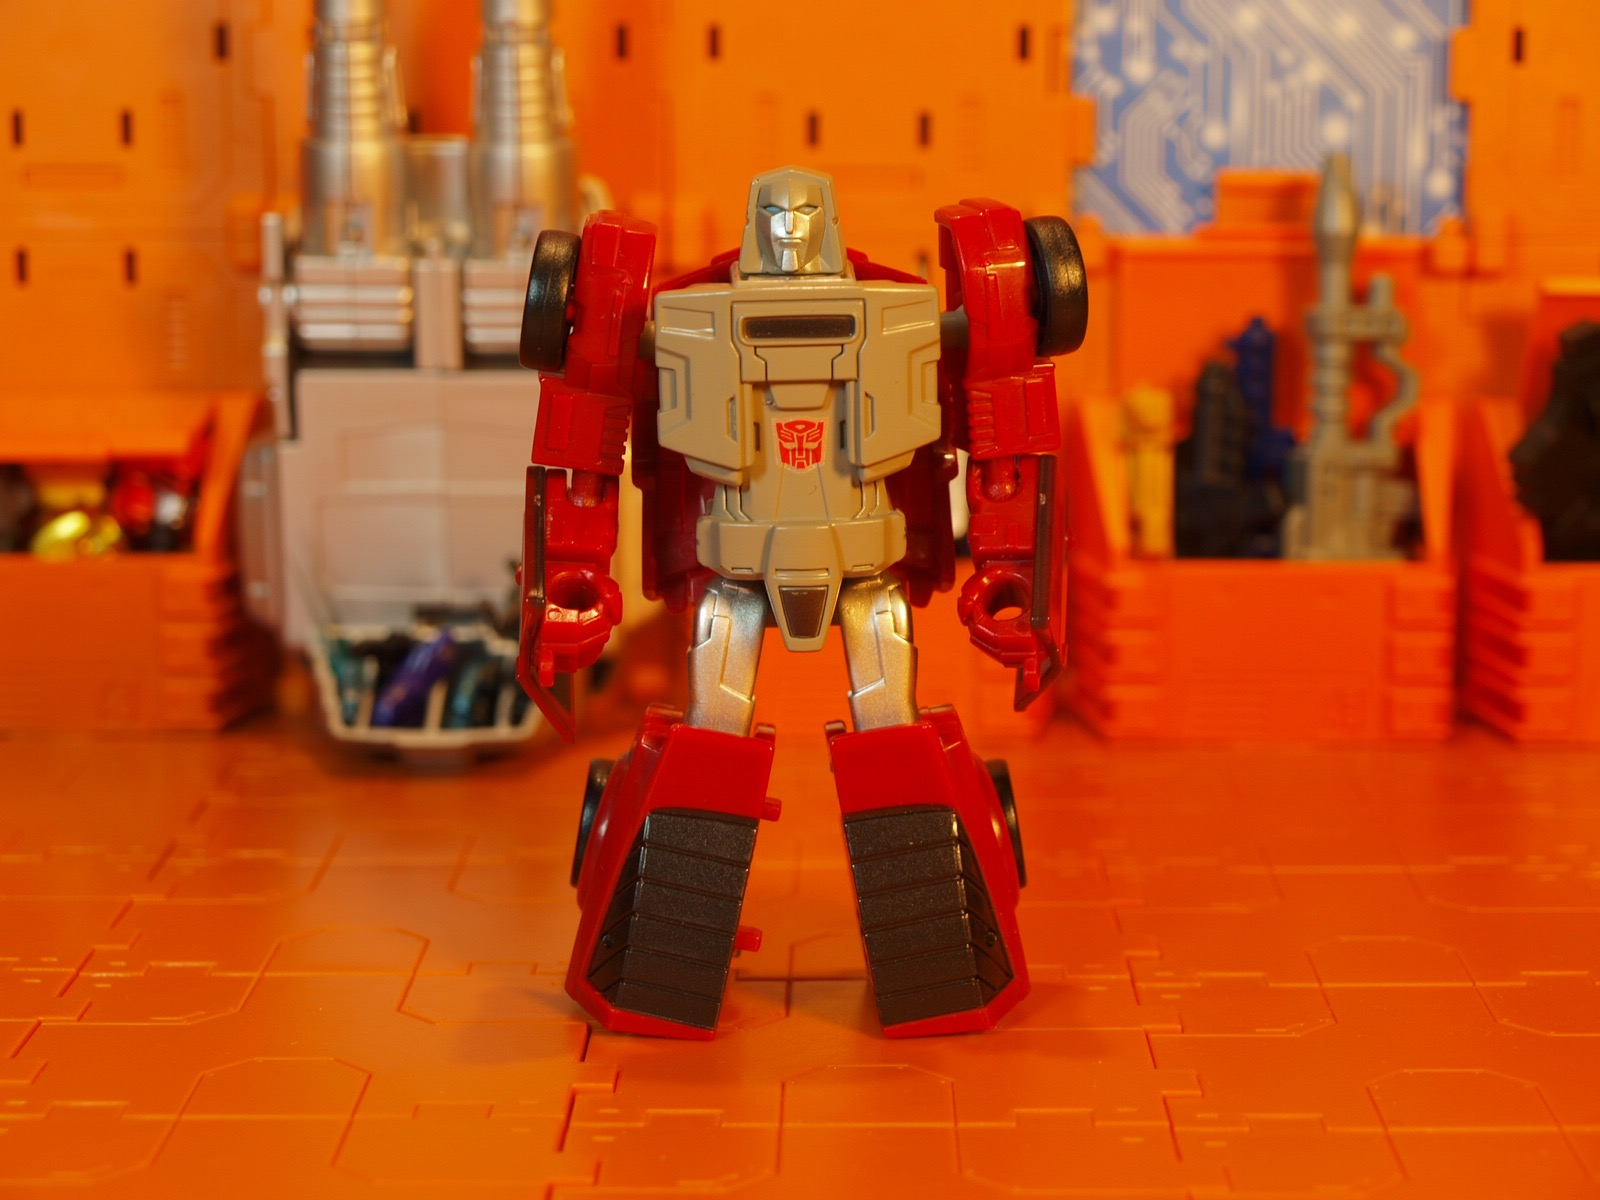 Windcharger robot mode